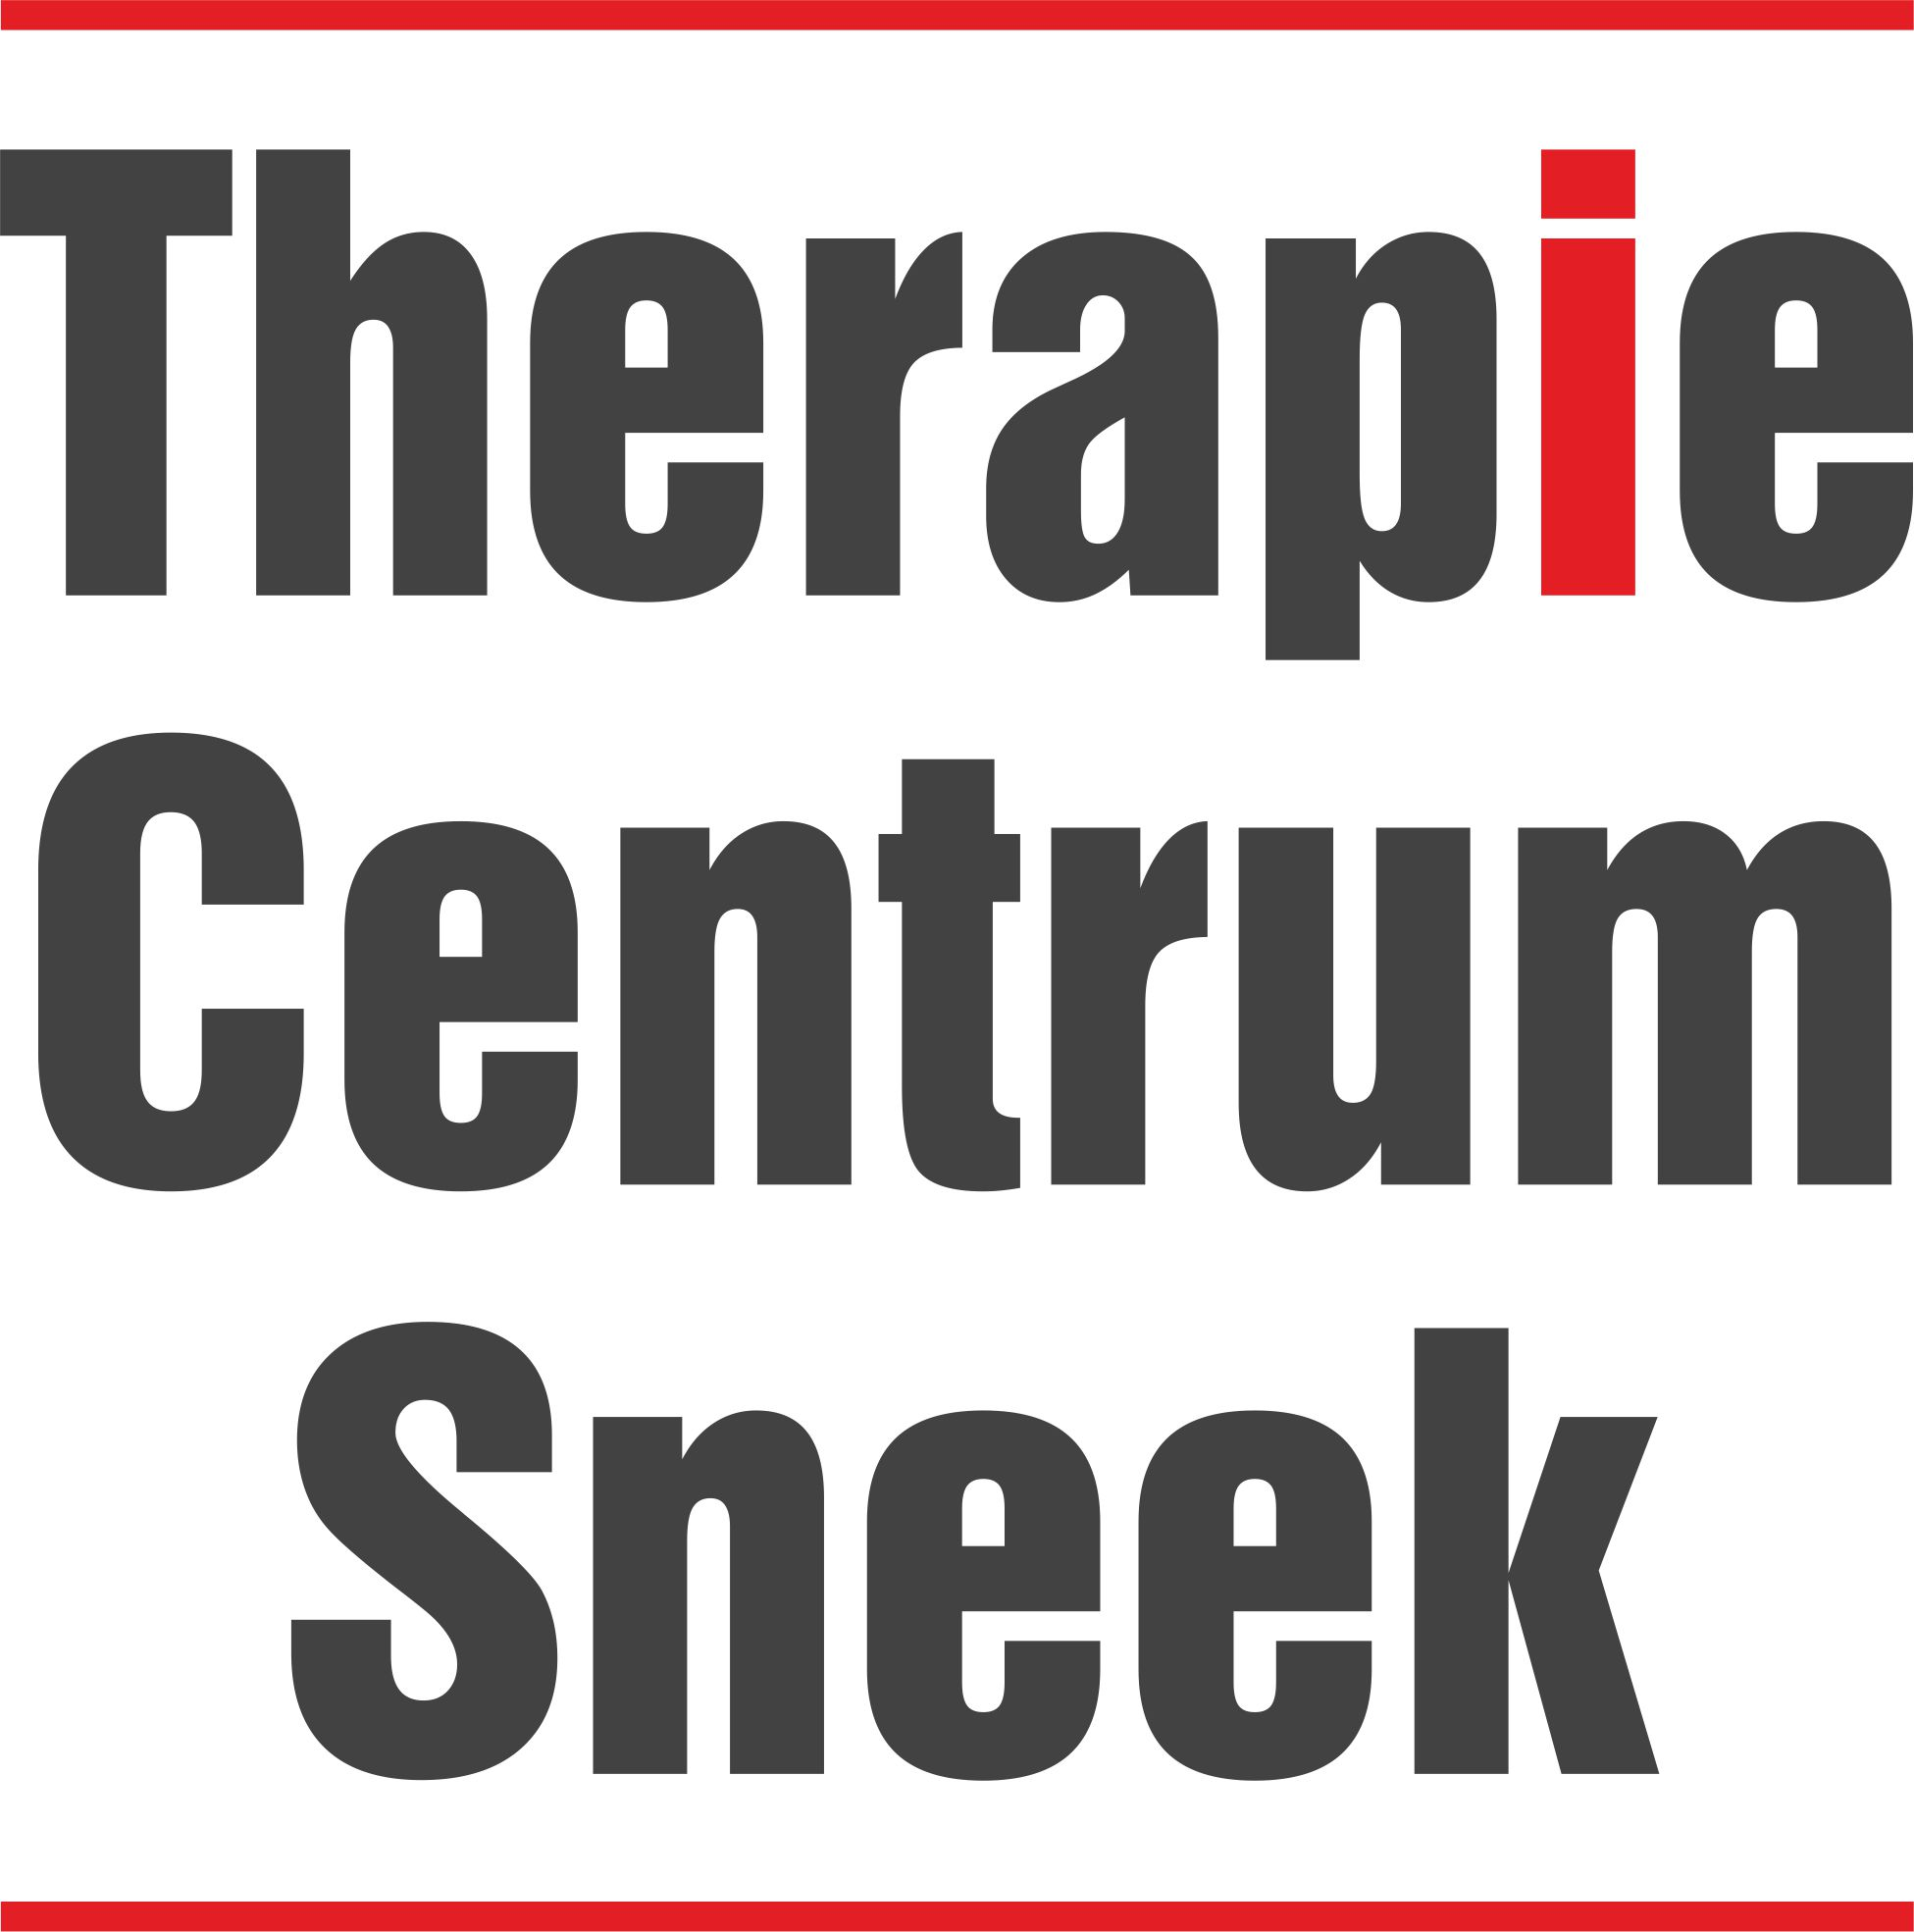 Therapie Centrum Sneek